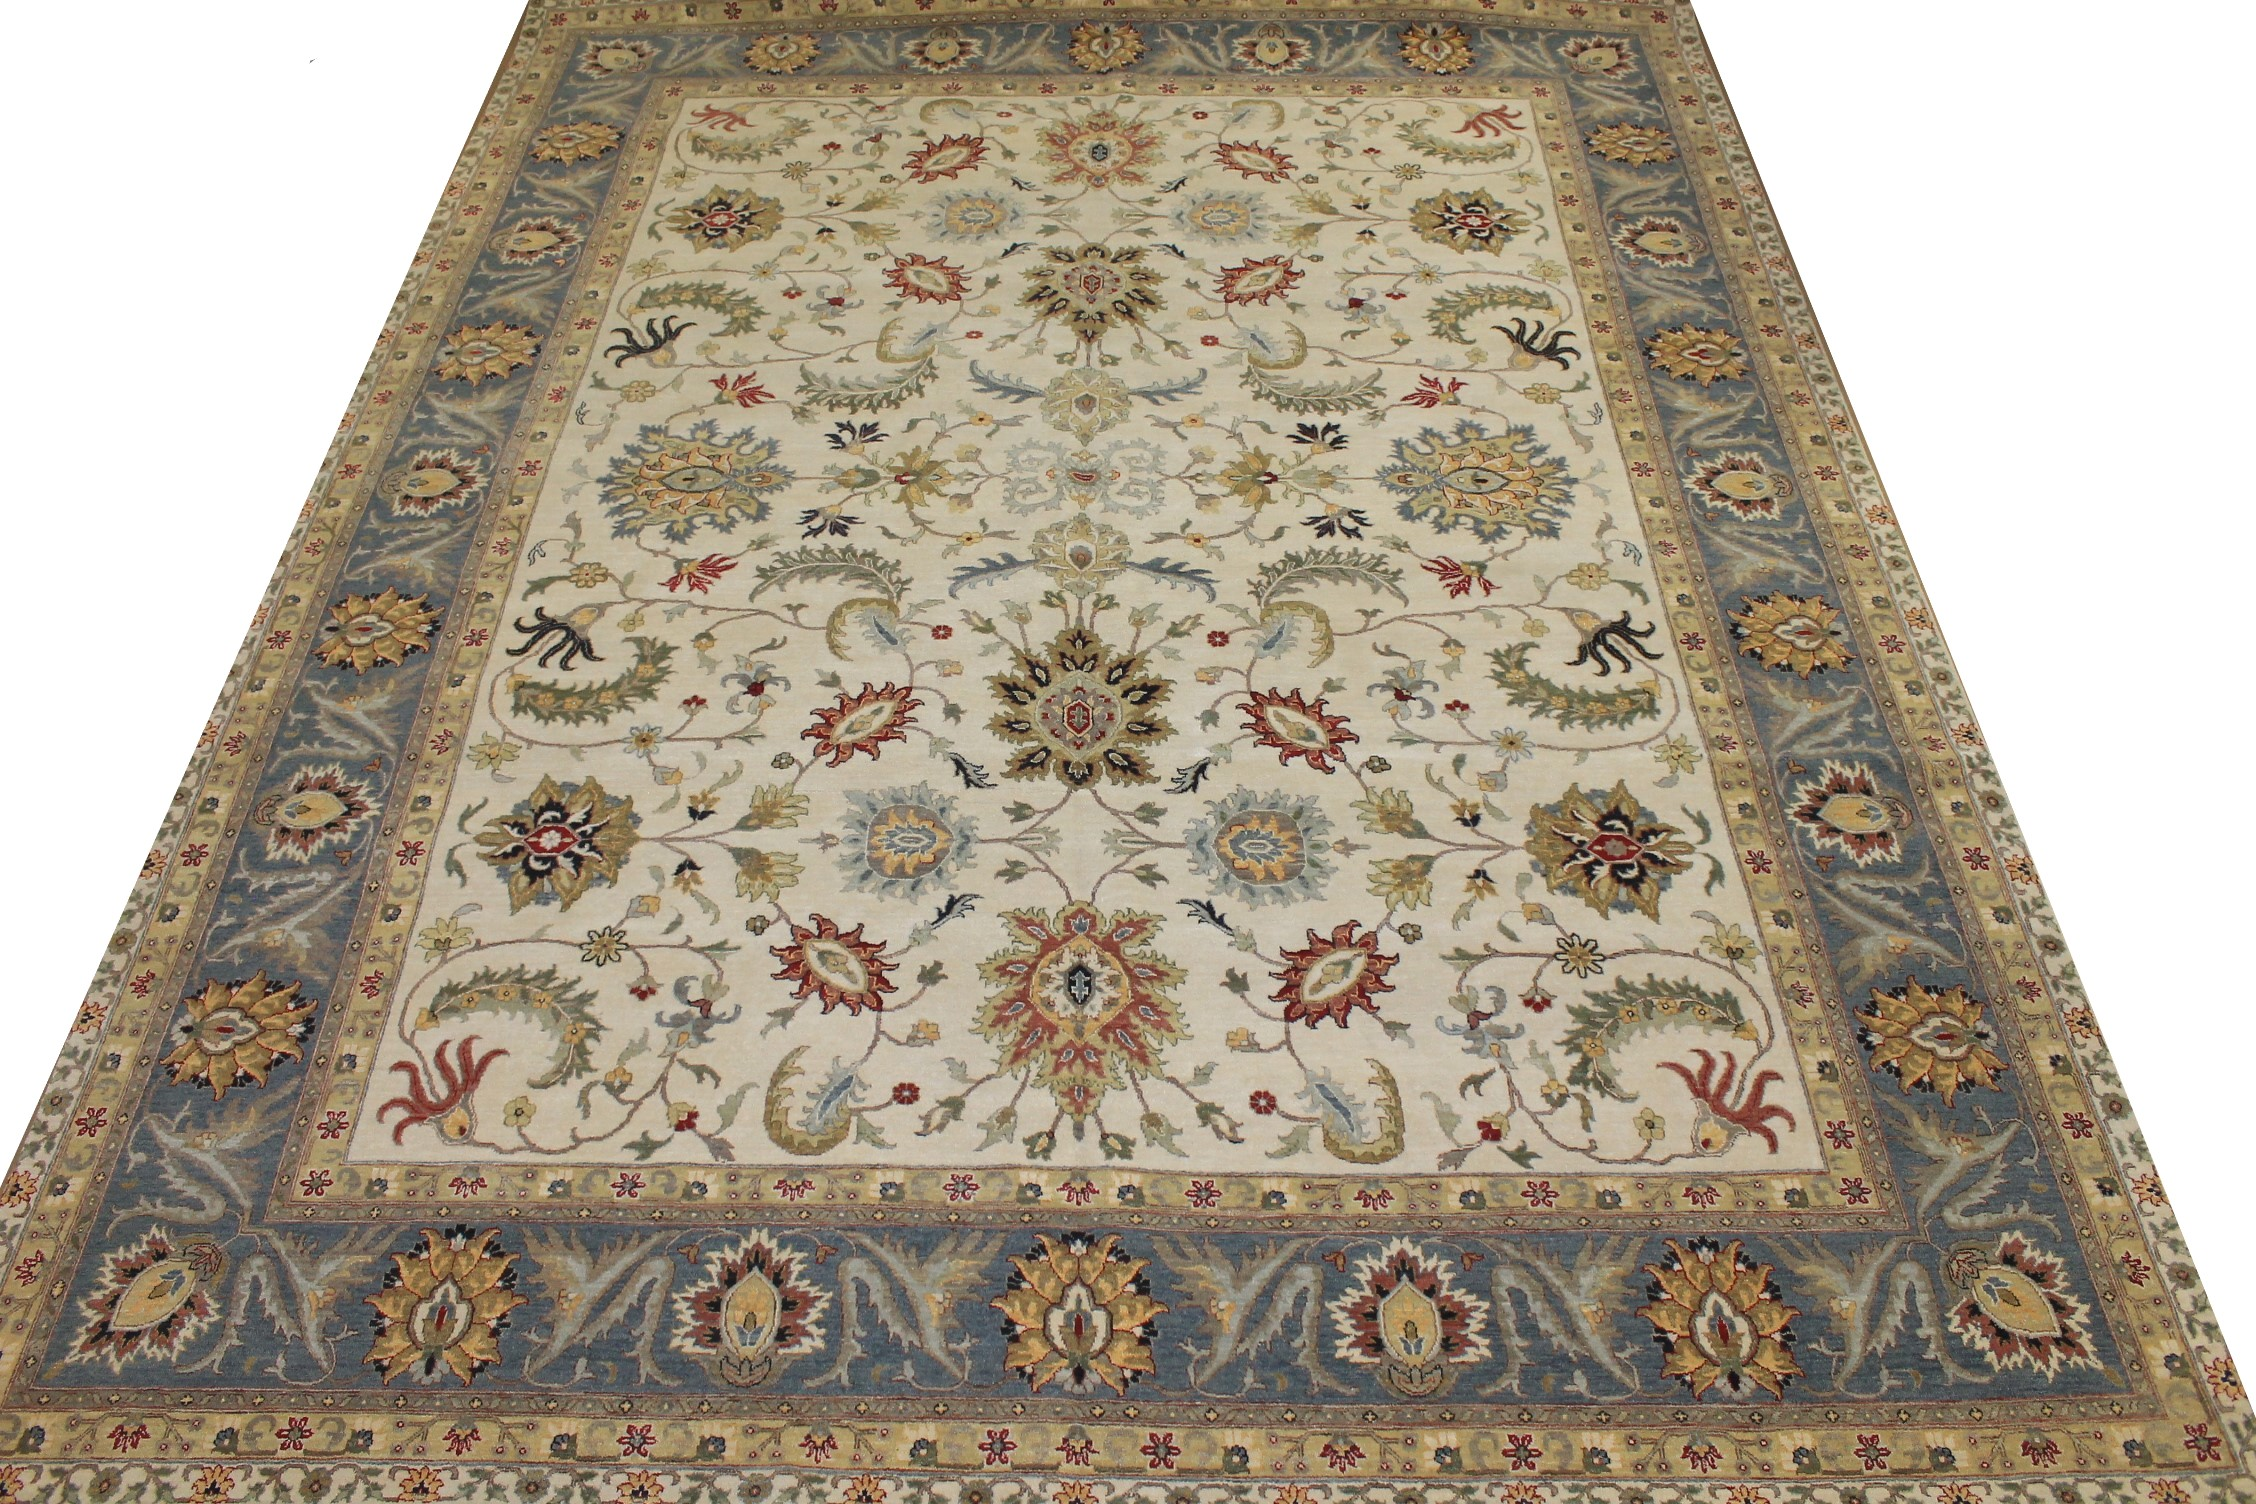 OVERSIZE Traditional Hand Knotted Wool Area Rug - MR025179